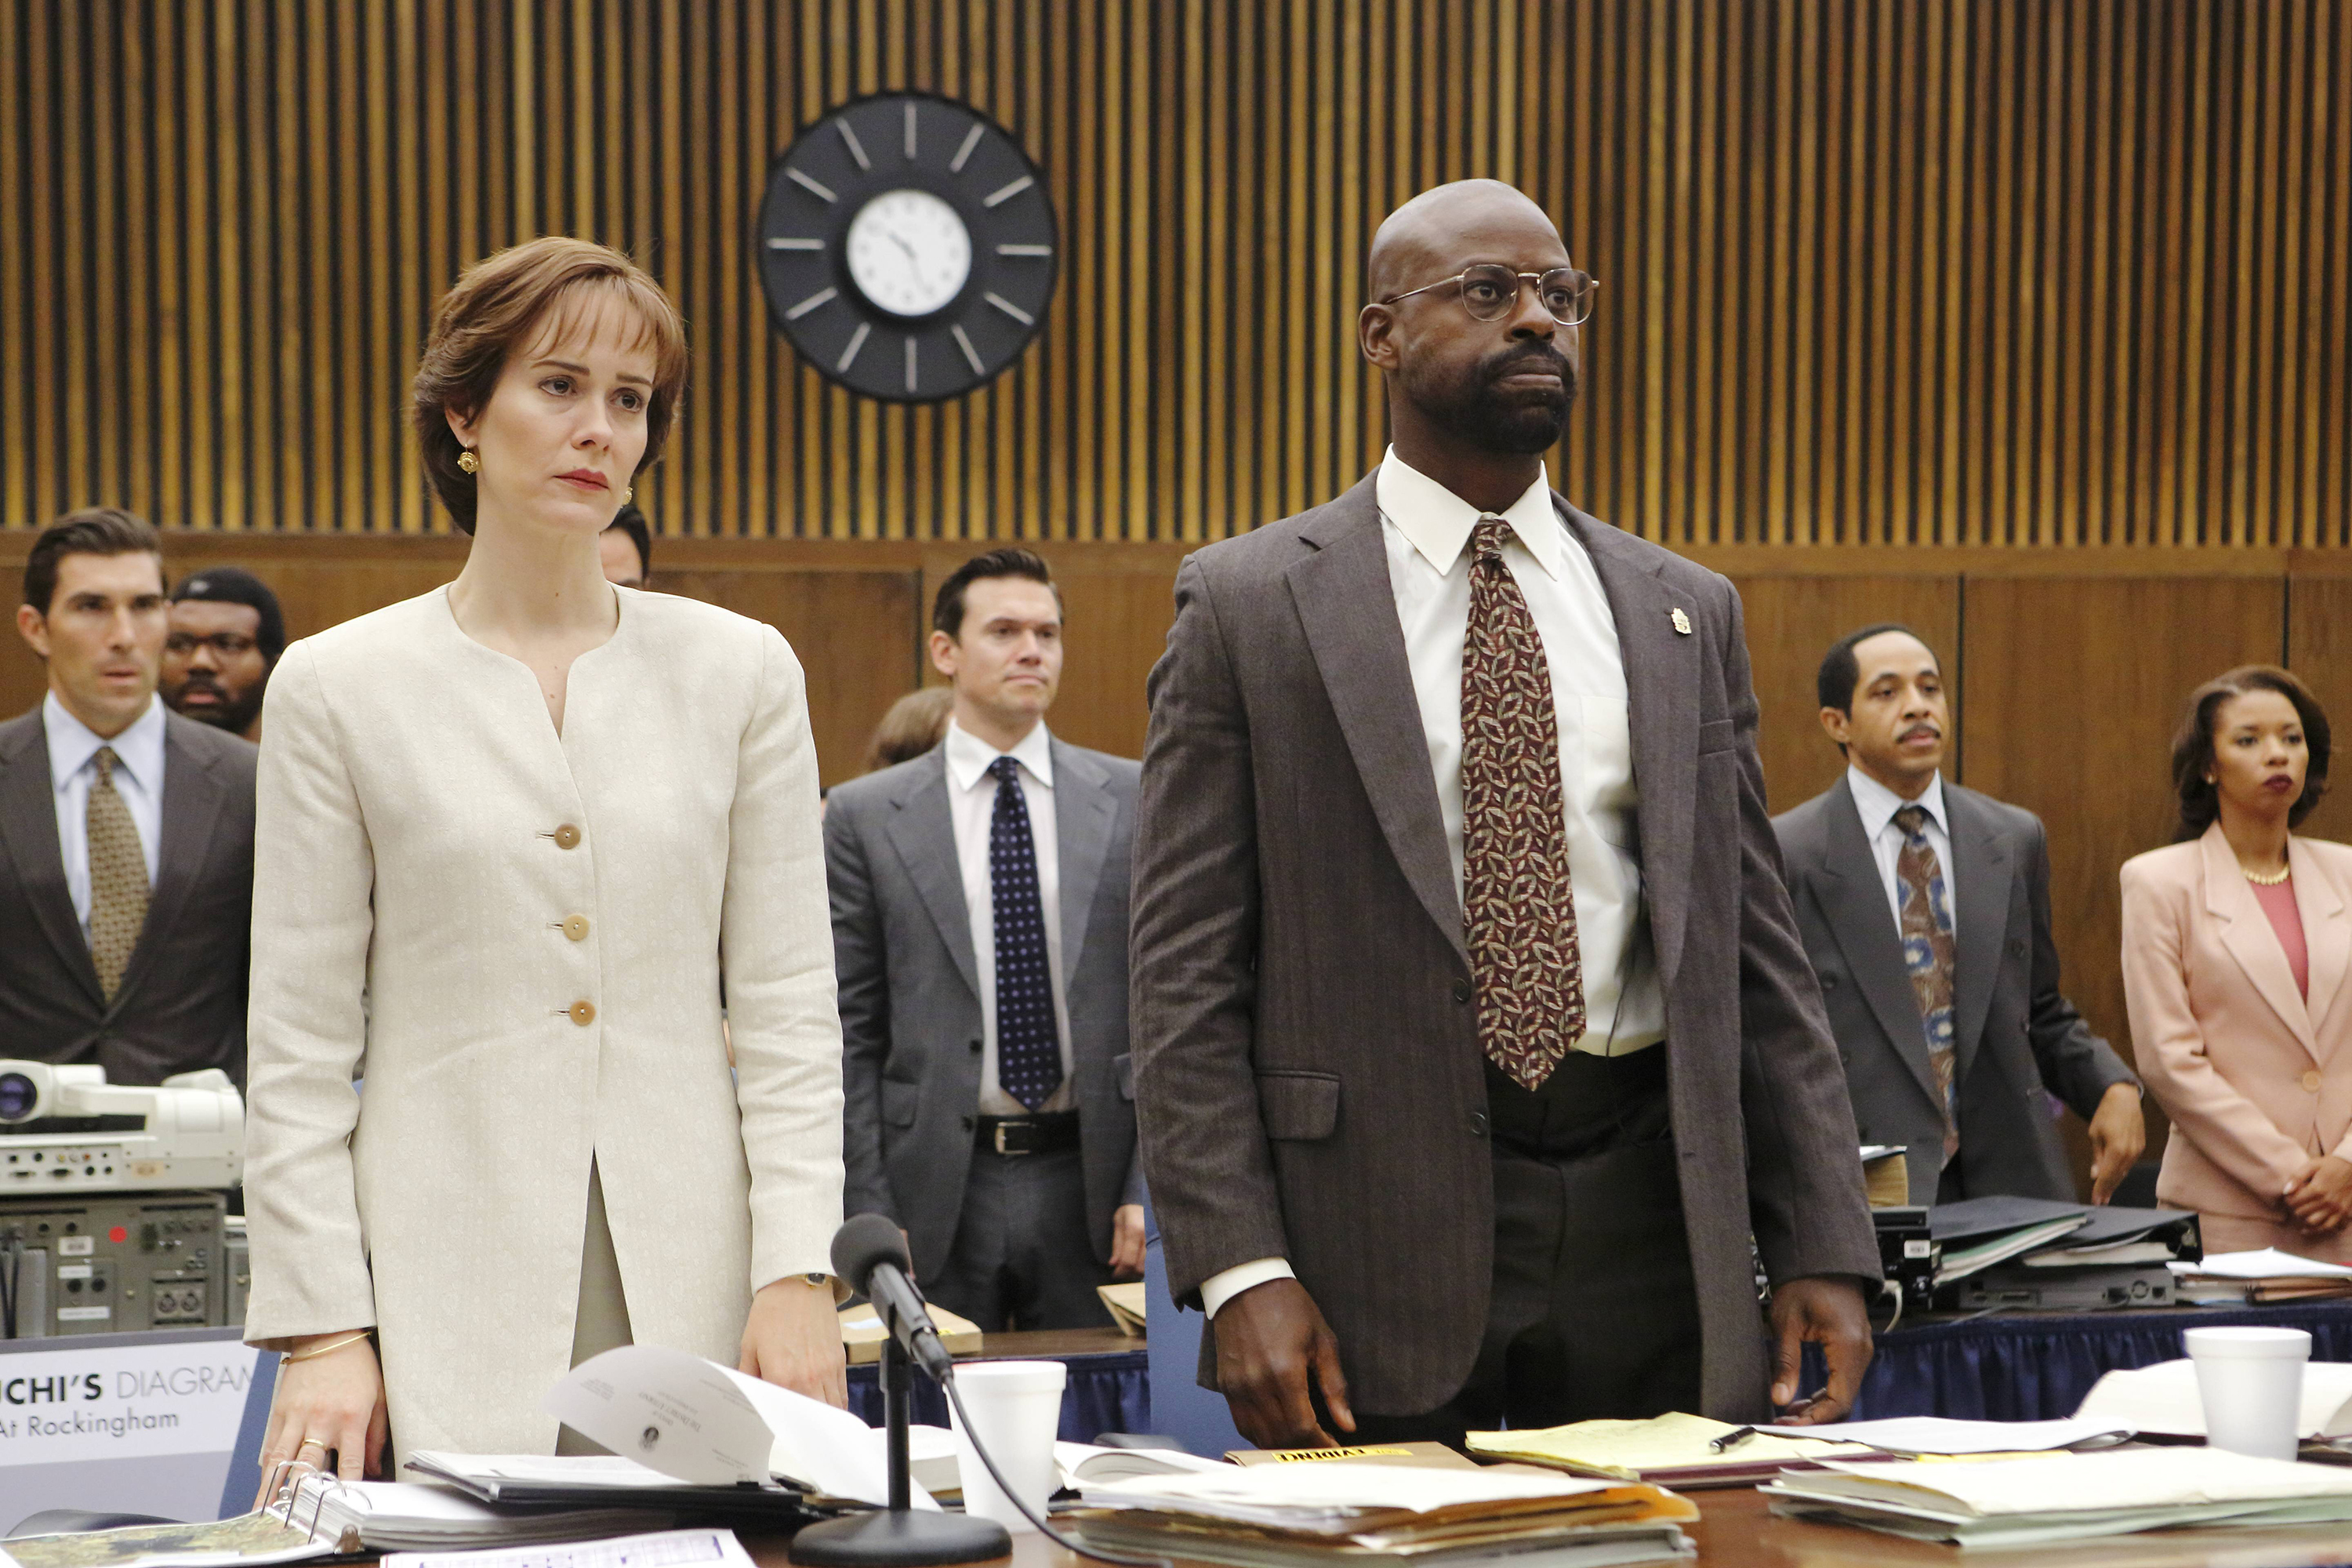 Sarah Paulson - Sterling K. Brown - The People v. O.J. Simpson